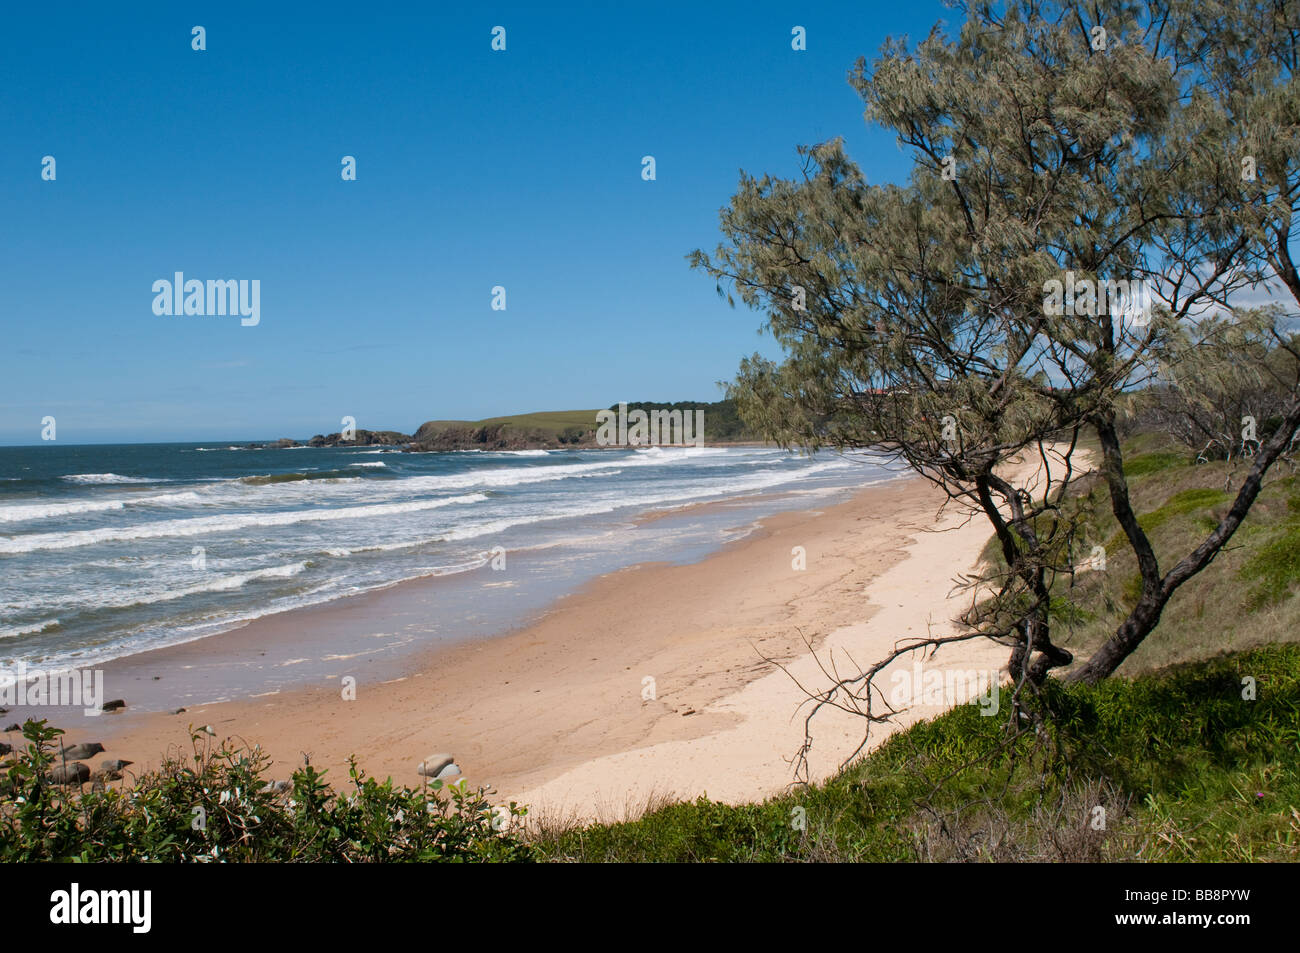 Rain Beach Emerald Coast Blue Sea Australia Ocean Summer: Emerald Beach Coffs Harbour Region NSW Australia Stock